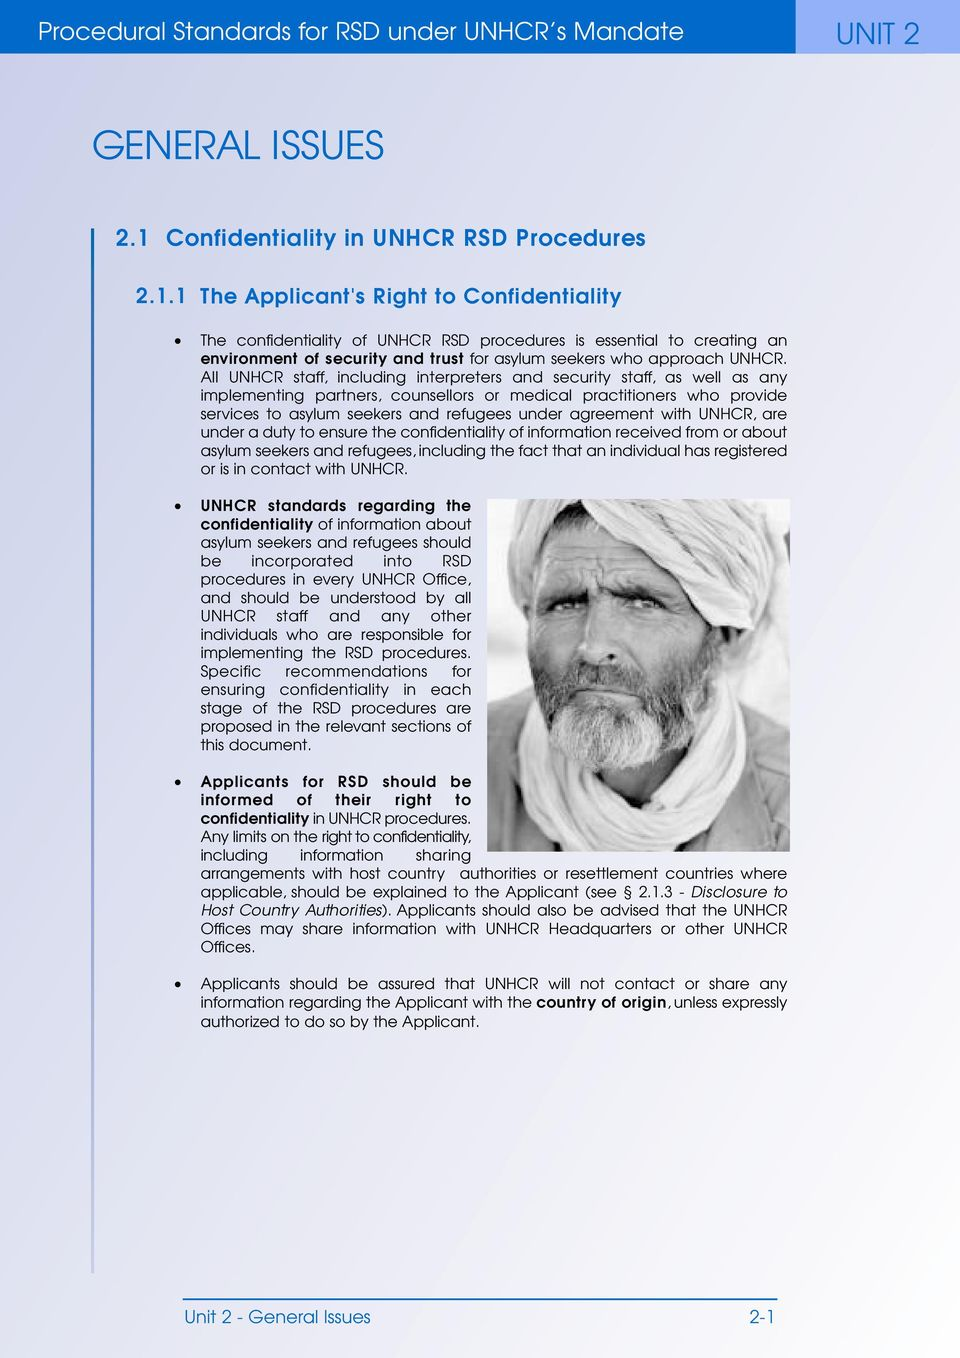 1 The Applicant's Right to Confidentiality The confidentiality of UNHCR RSD procedures is essential to creating an environment of security and trust for asylum seekers who approach UNHCR.